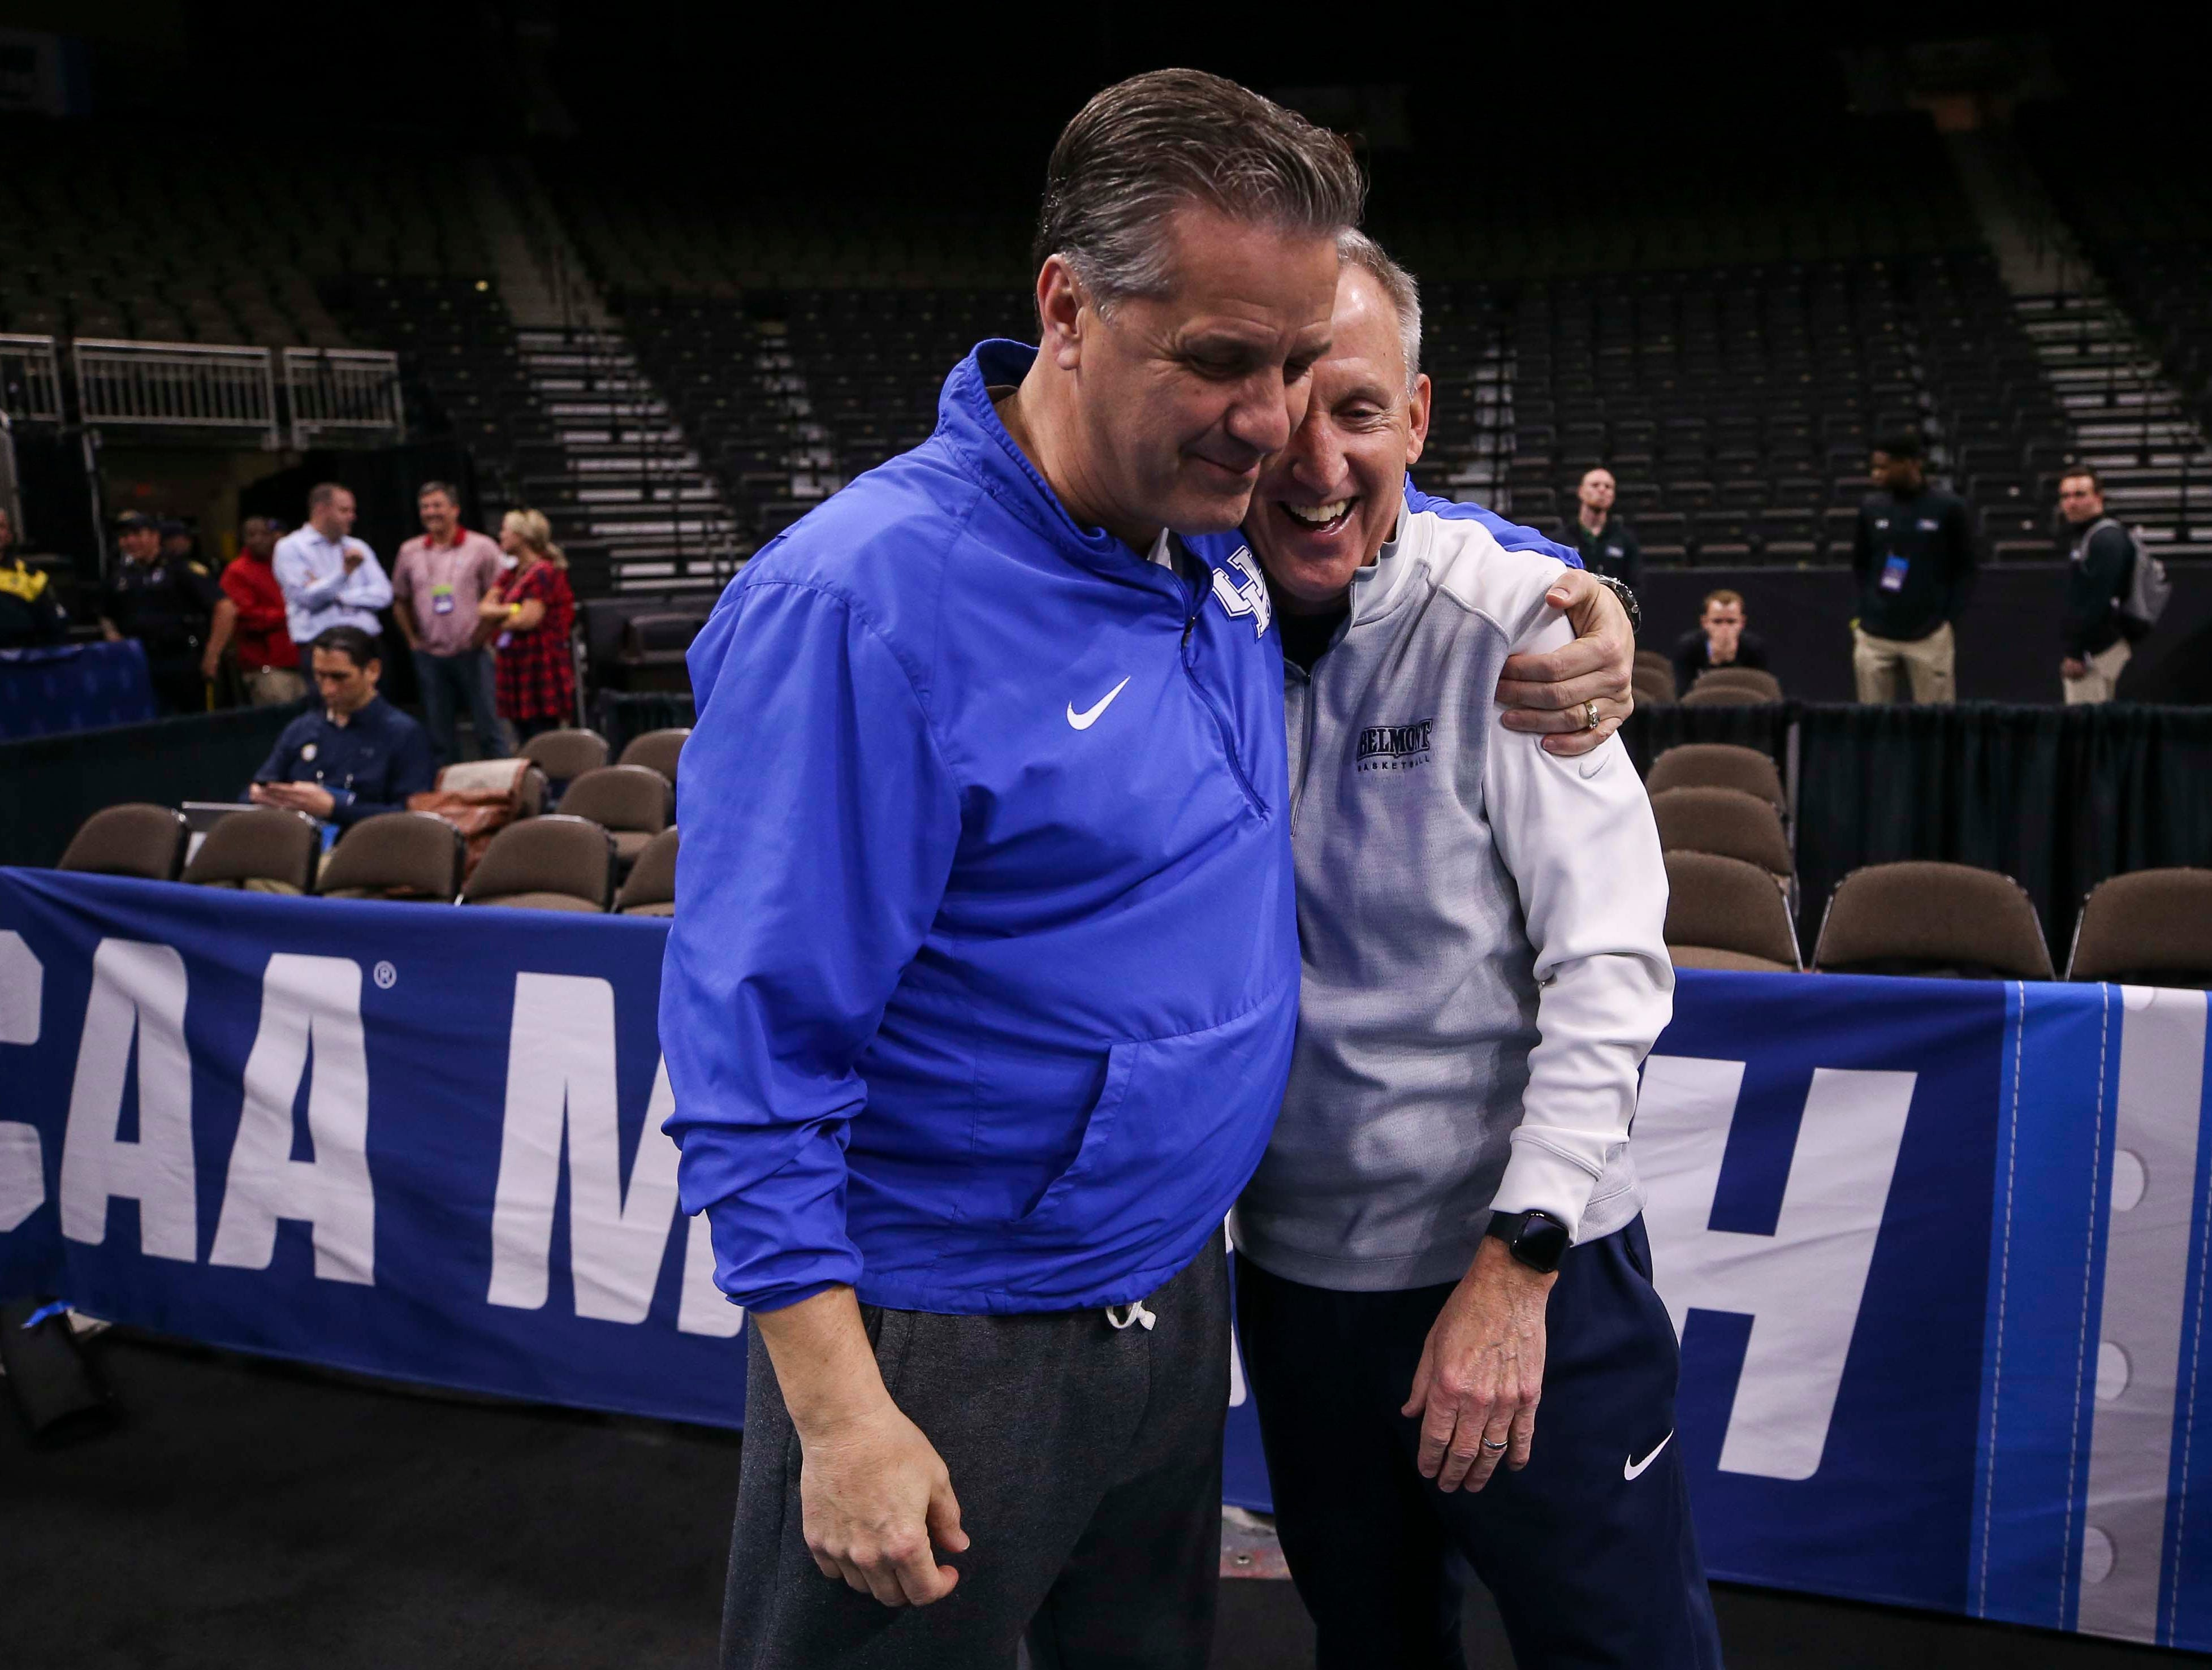 Kentucky's John Calipari greets Belmont head coach Ricky Byrd near the end of the Wildcats' practice Wednesday afternoon in Jacksonville before the start of the NCAA tournament. March 20, 2019